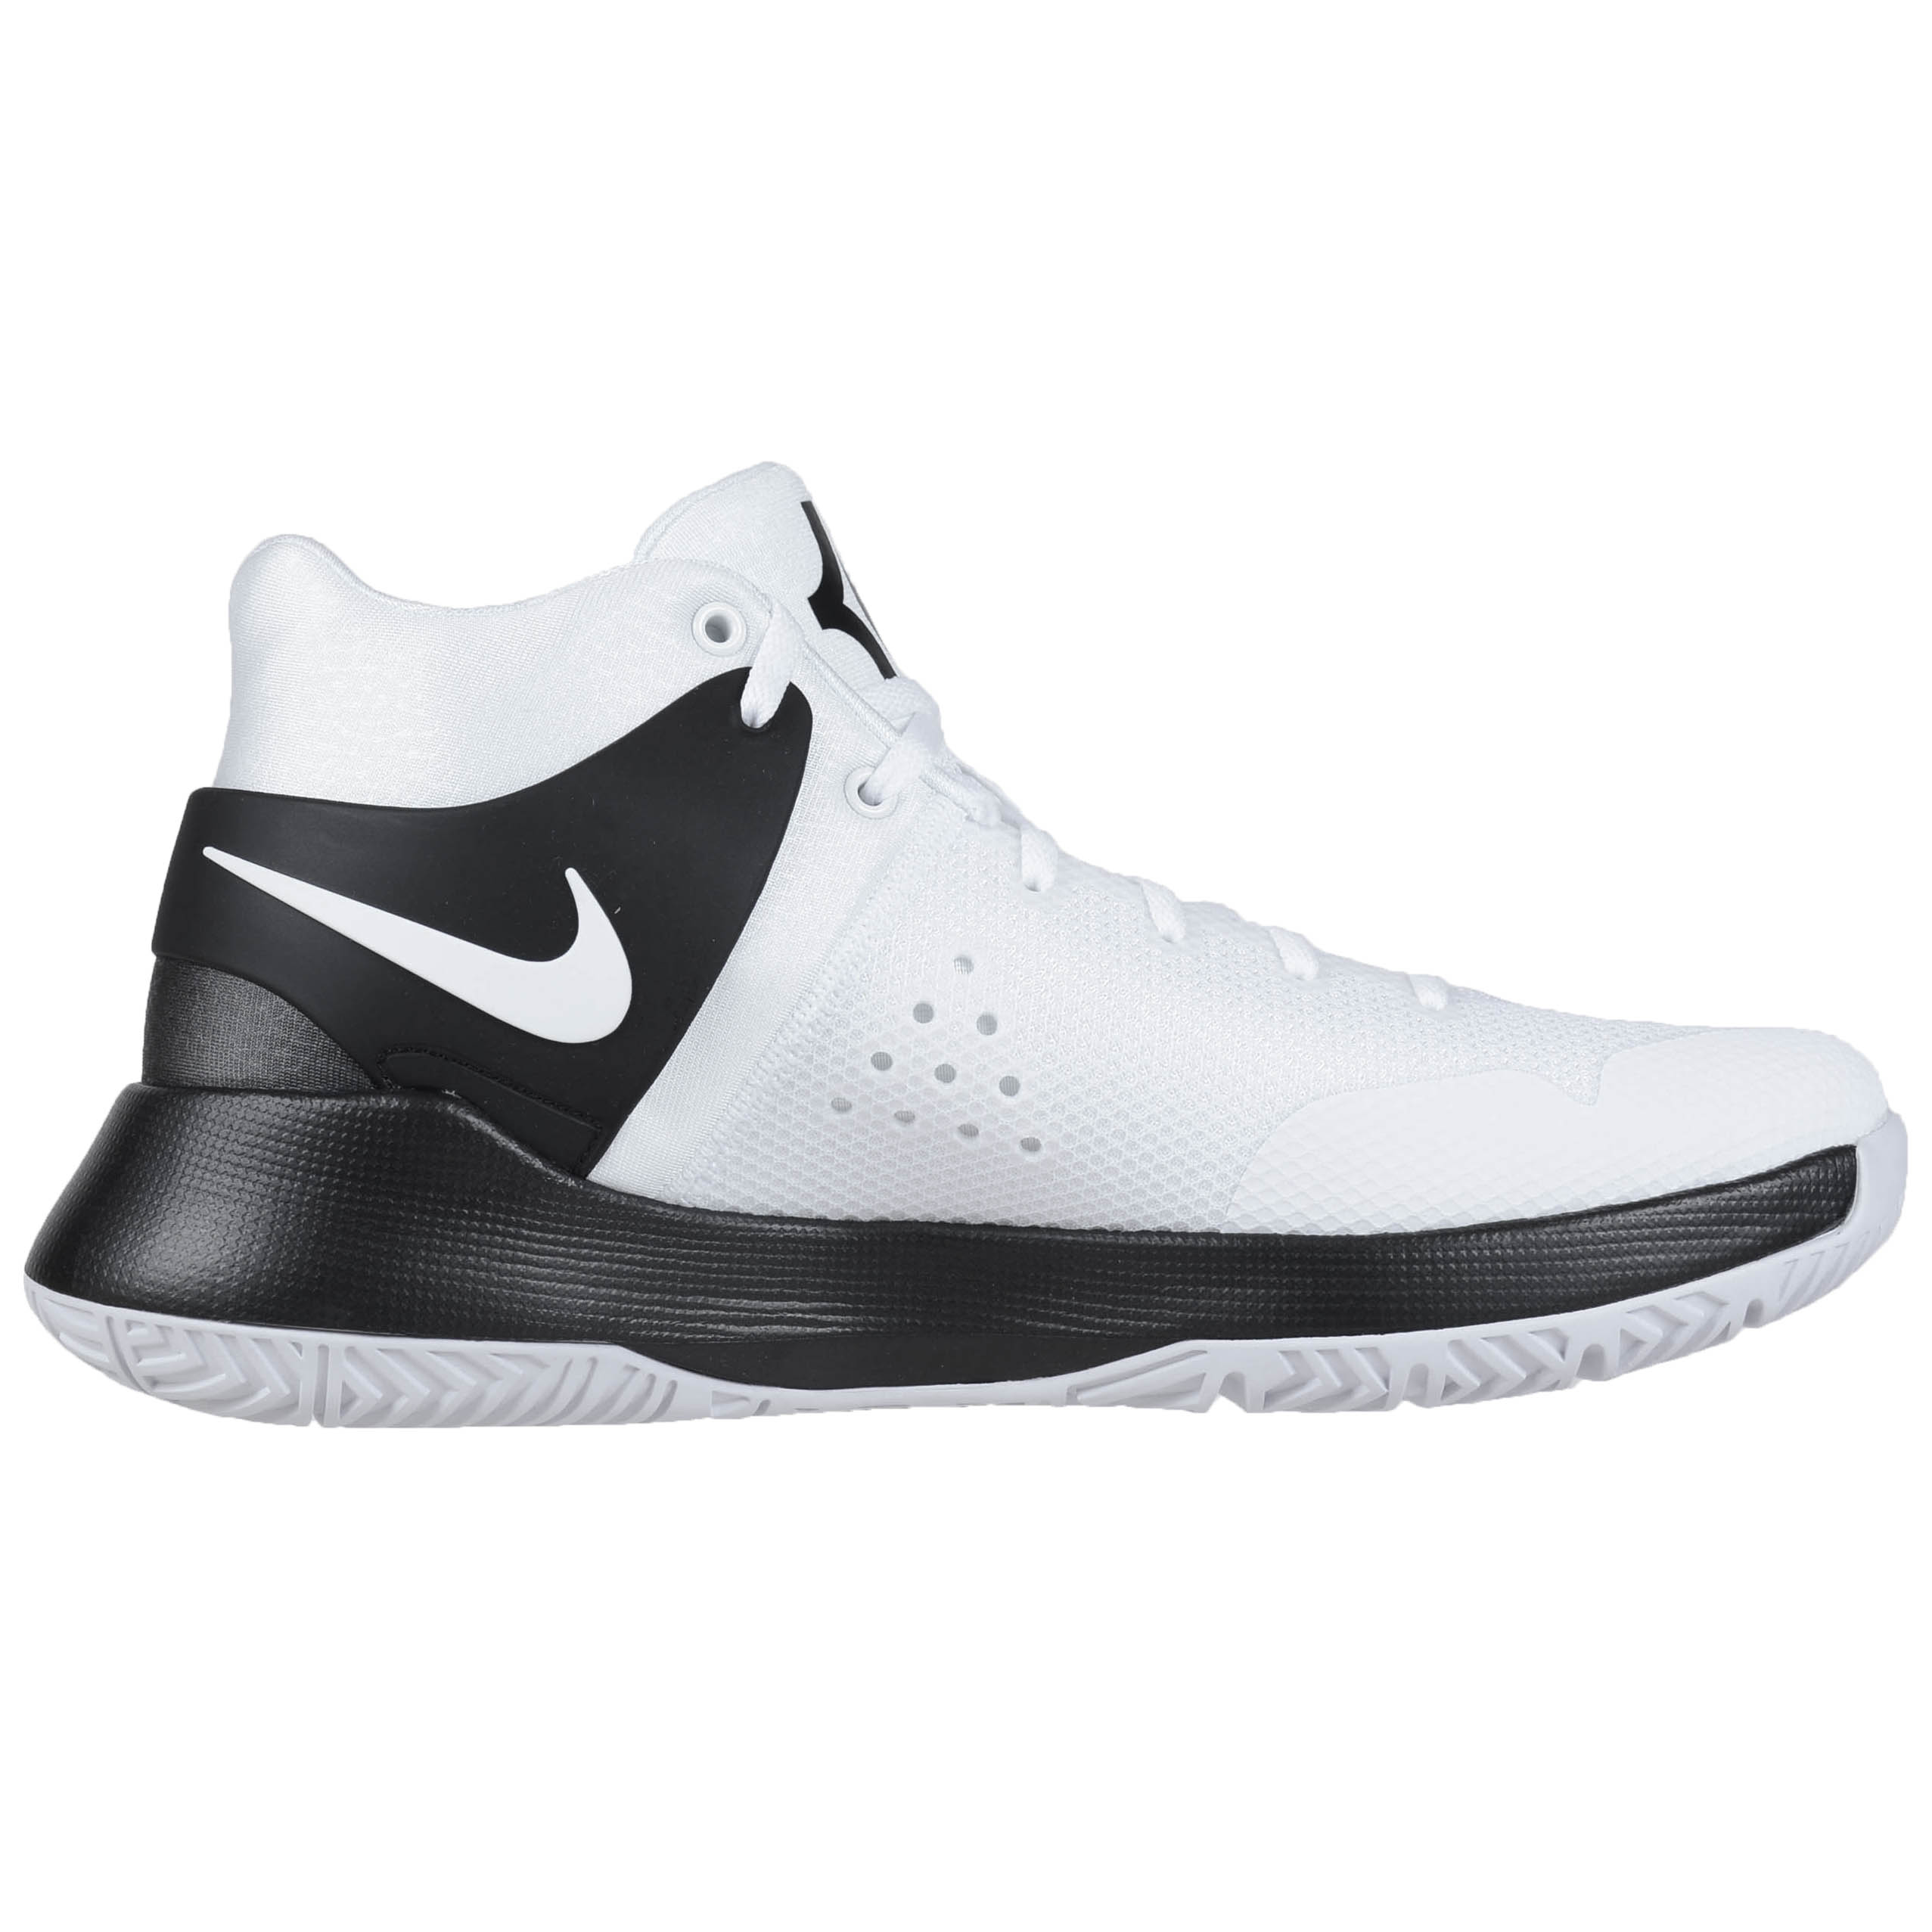 ... running shoes; nike kd trey 5 iv tb white black kevin durant mens  basketball 844590 100